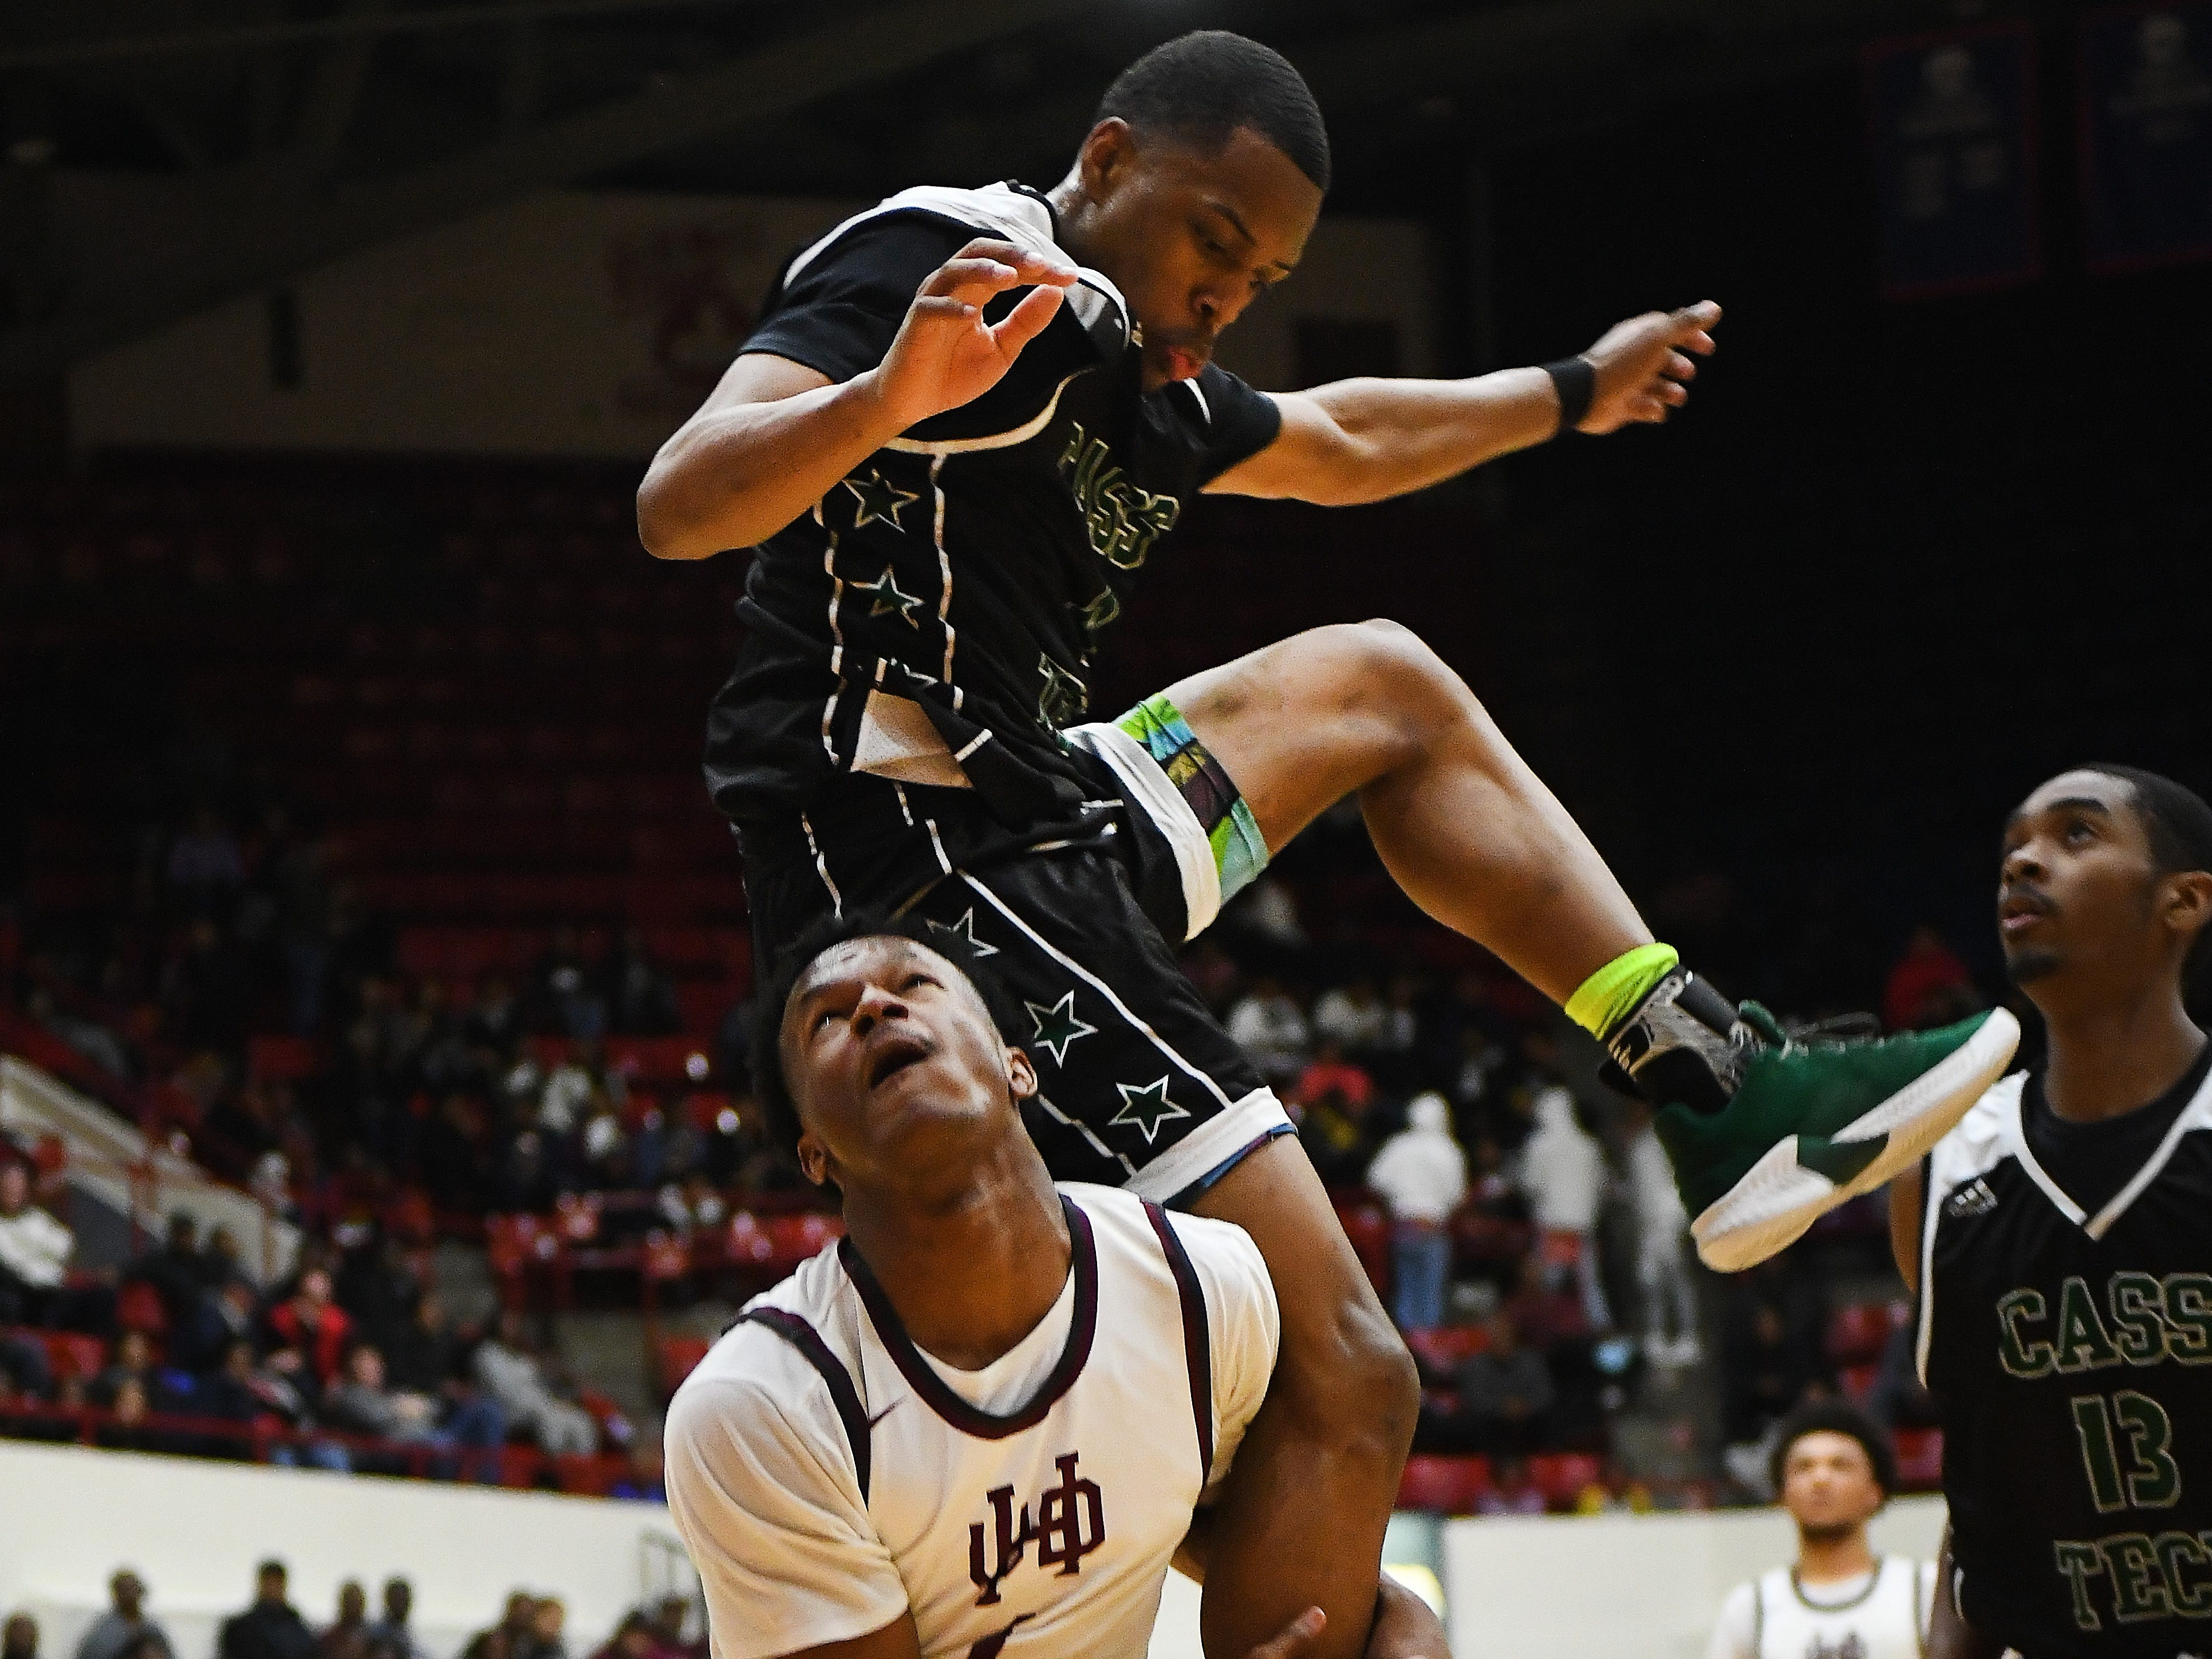 What goes up must come down as Cass Tech's Kyle Legrair discovers going up for the ball but crashing down over U of D Jesuit's Julian Dozier in the second half.